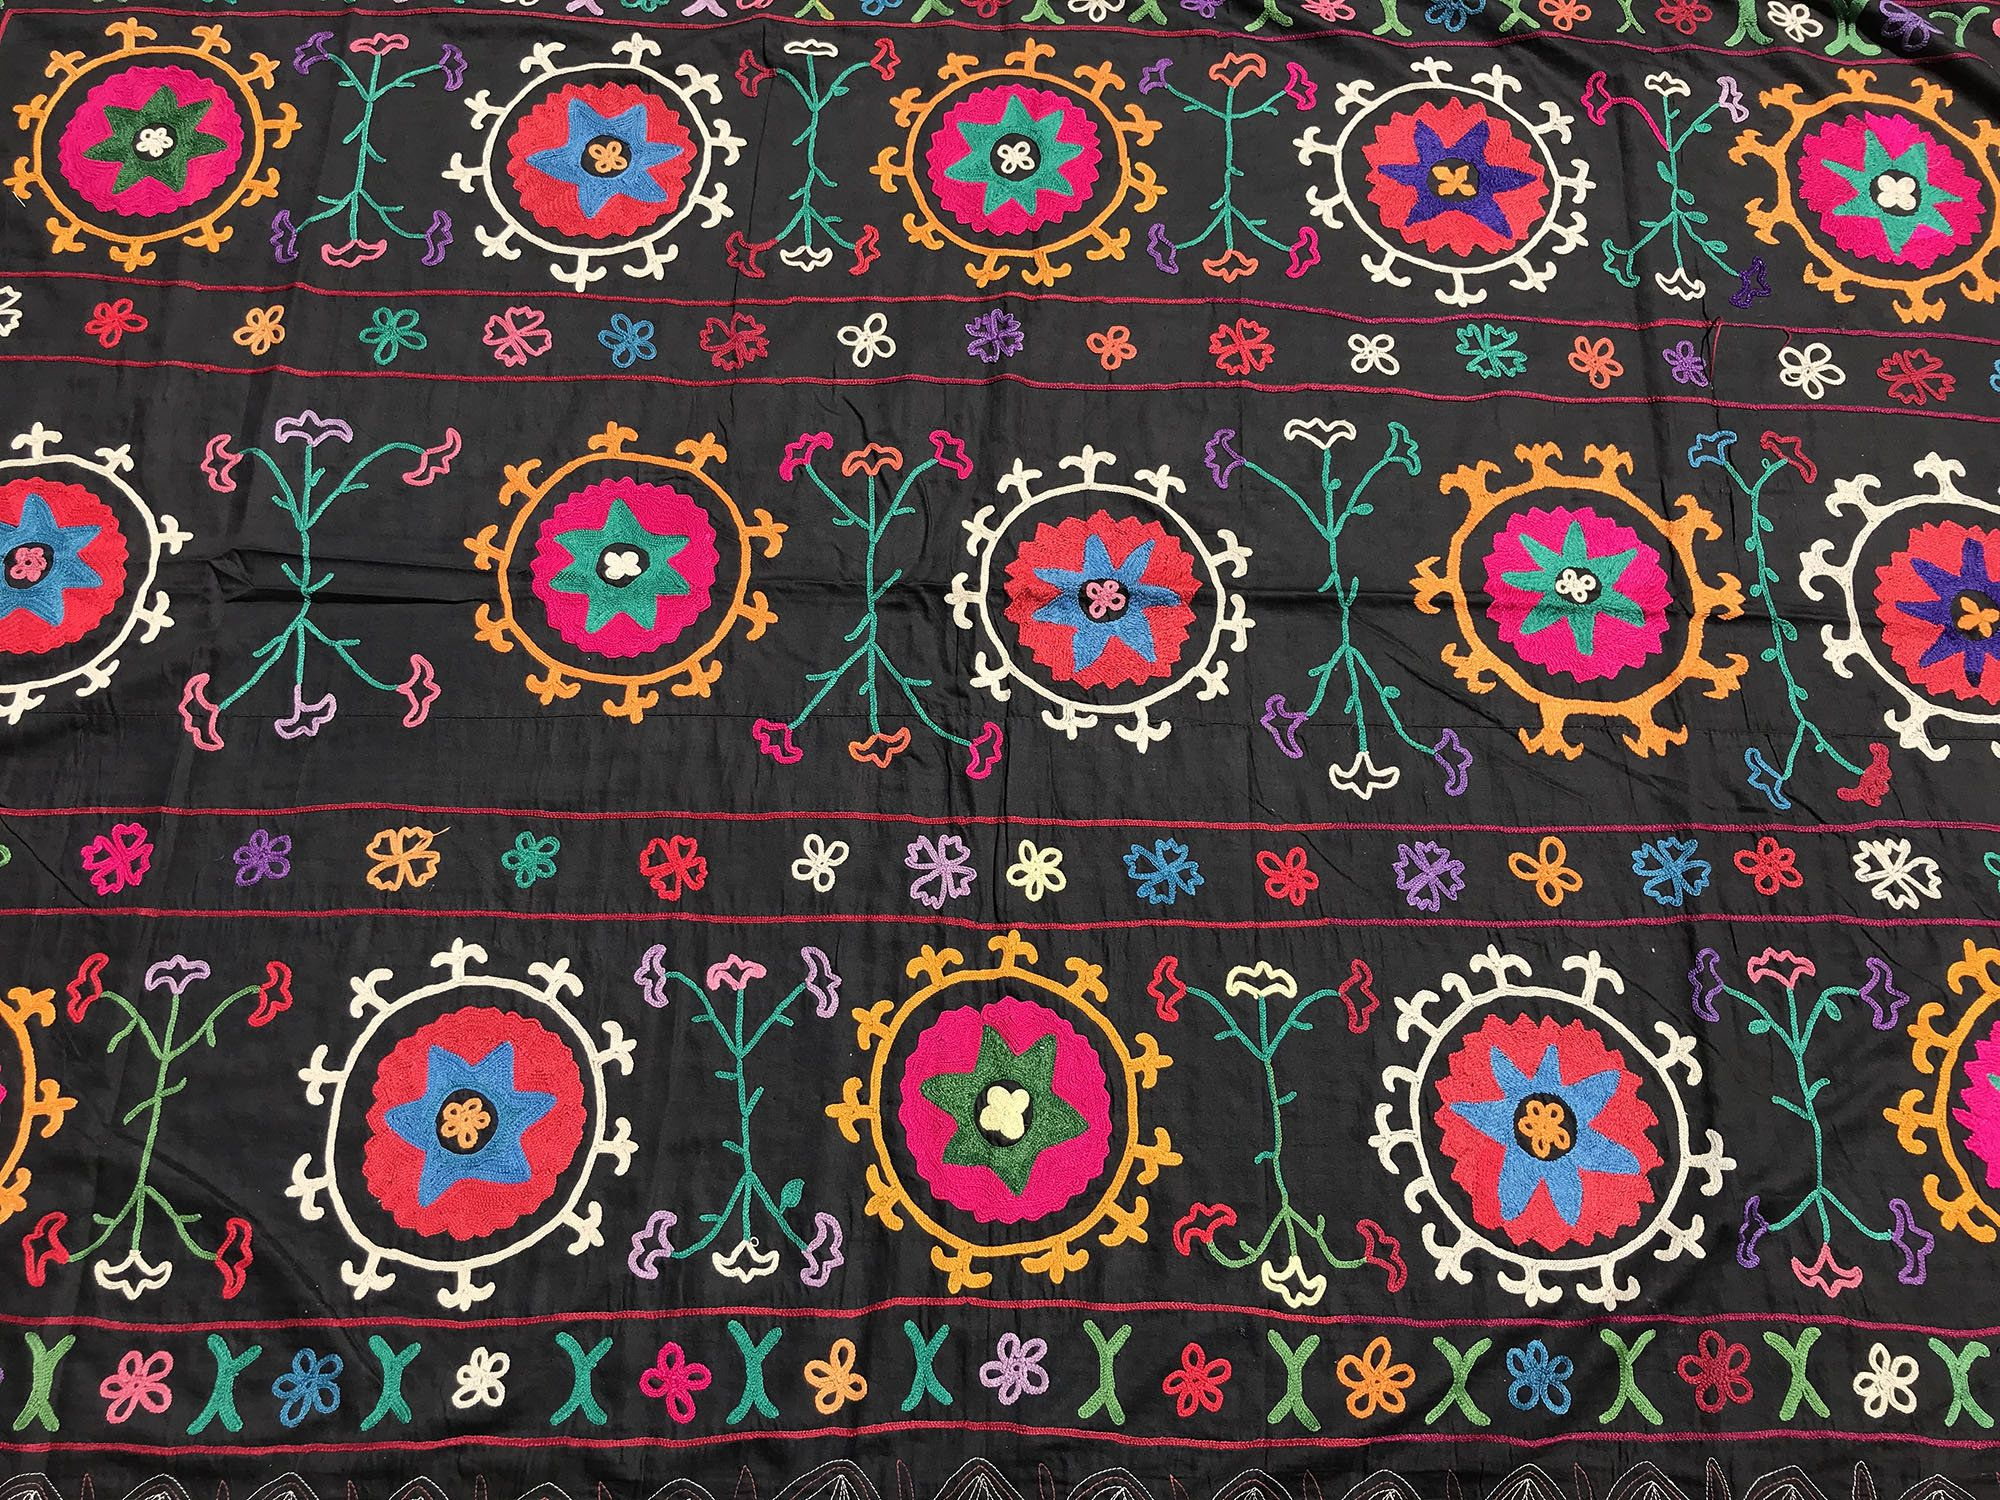 OLD CROCHET Black Suzani   Special Needlework   Handmade Boho Tablecloth    Suzani Wall HANGING   Colorful Suzani Fabric   Vintage Bedding By  Istanbulcarpet ...